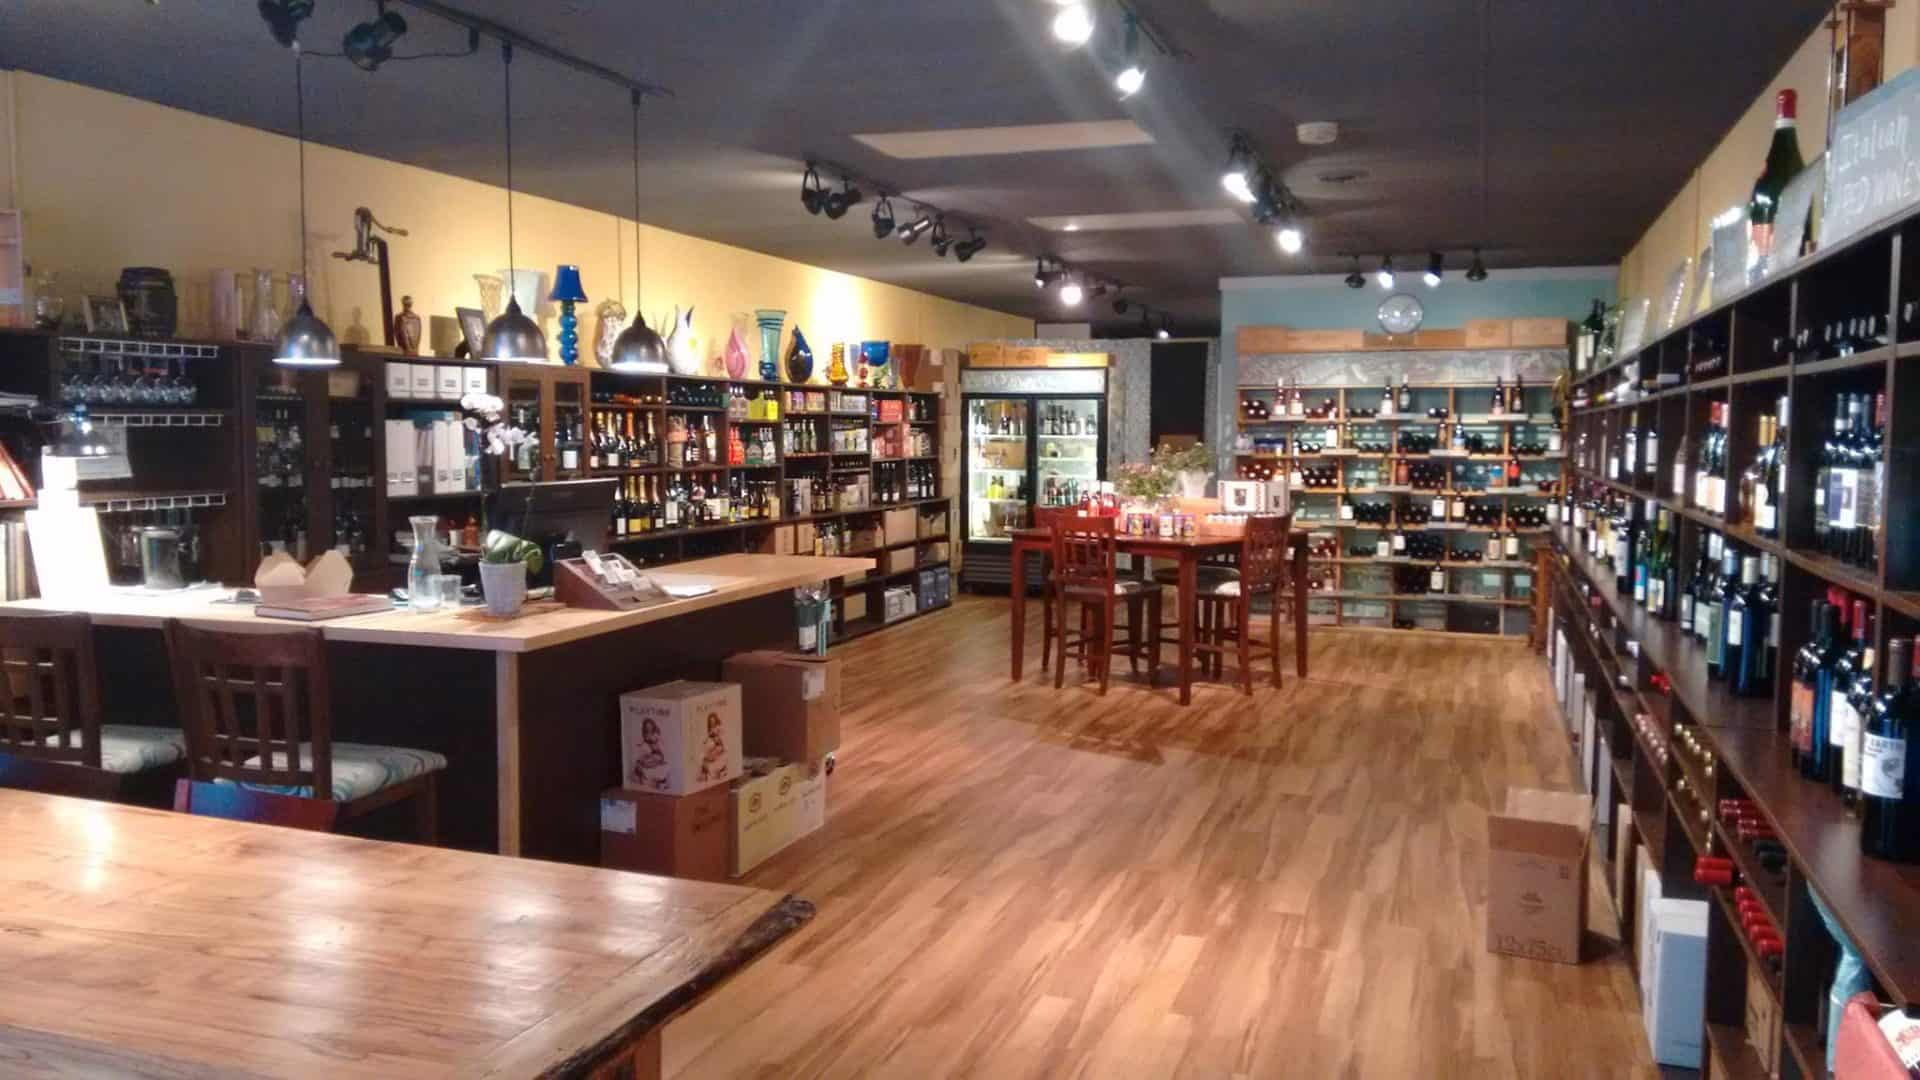 Bosu's Wine Shop in Waynesville, NC | Visit NC Smokies